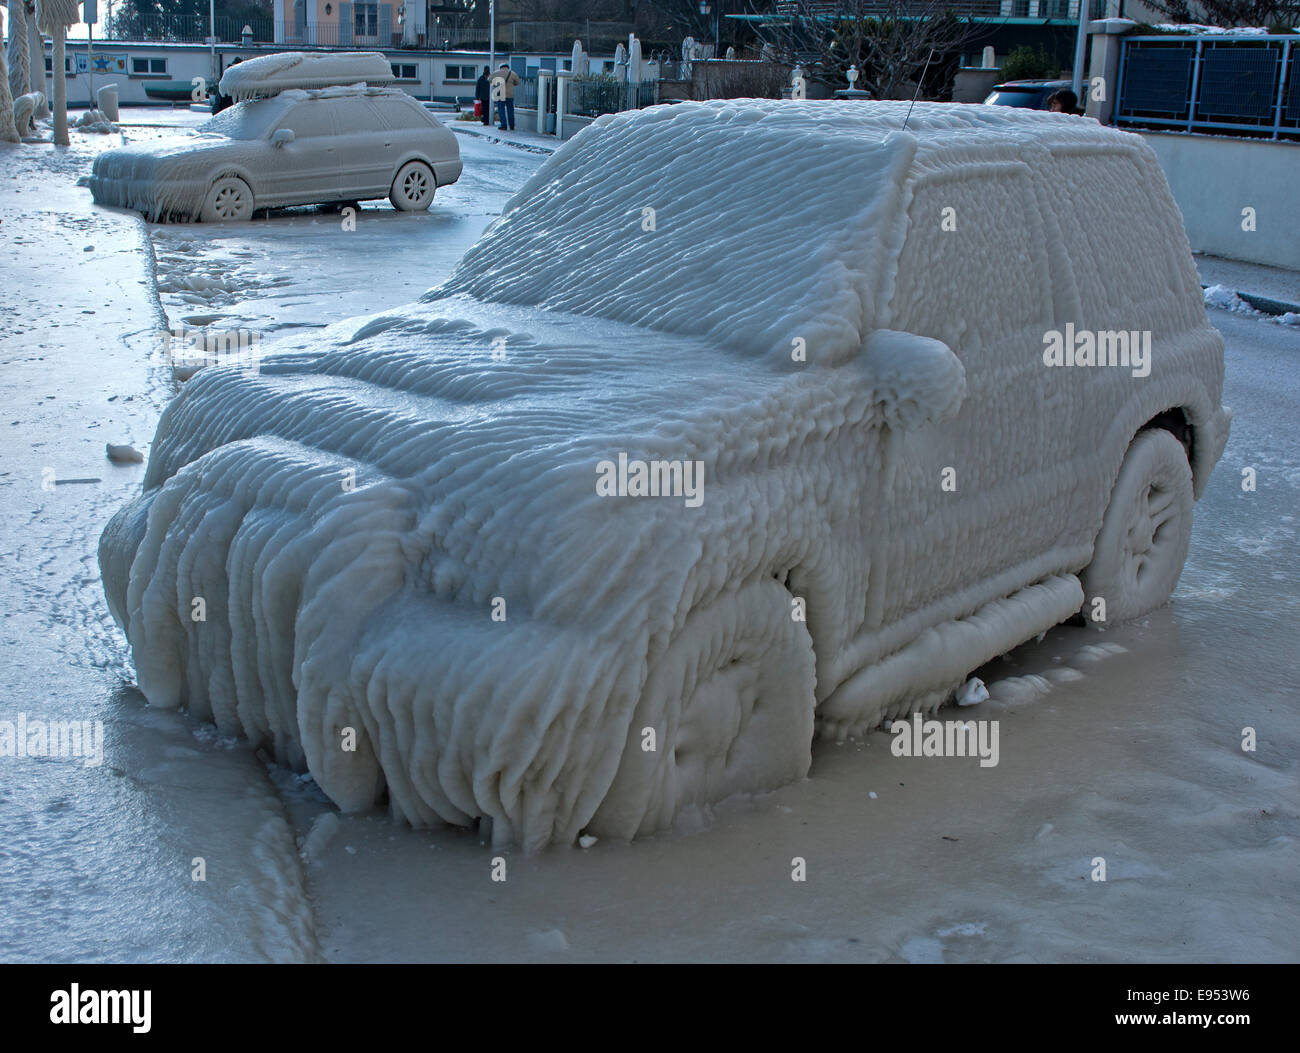 Car with a thick layer of ice parked in a street on Lake Geneva, Versoix, Canton of Geneva, Switzerland - Stock Image